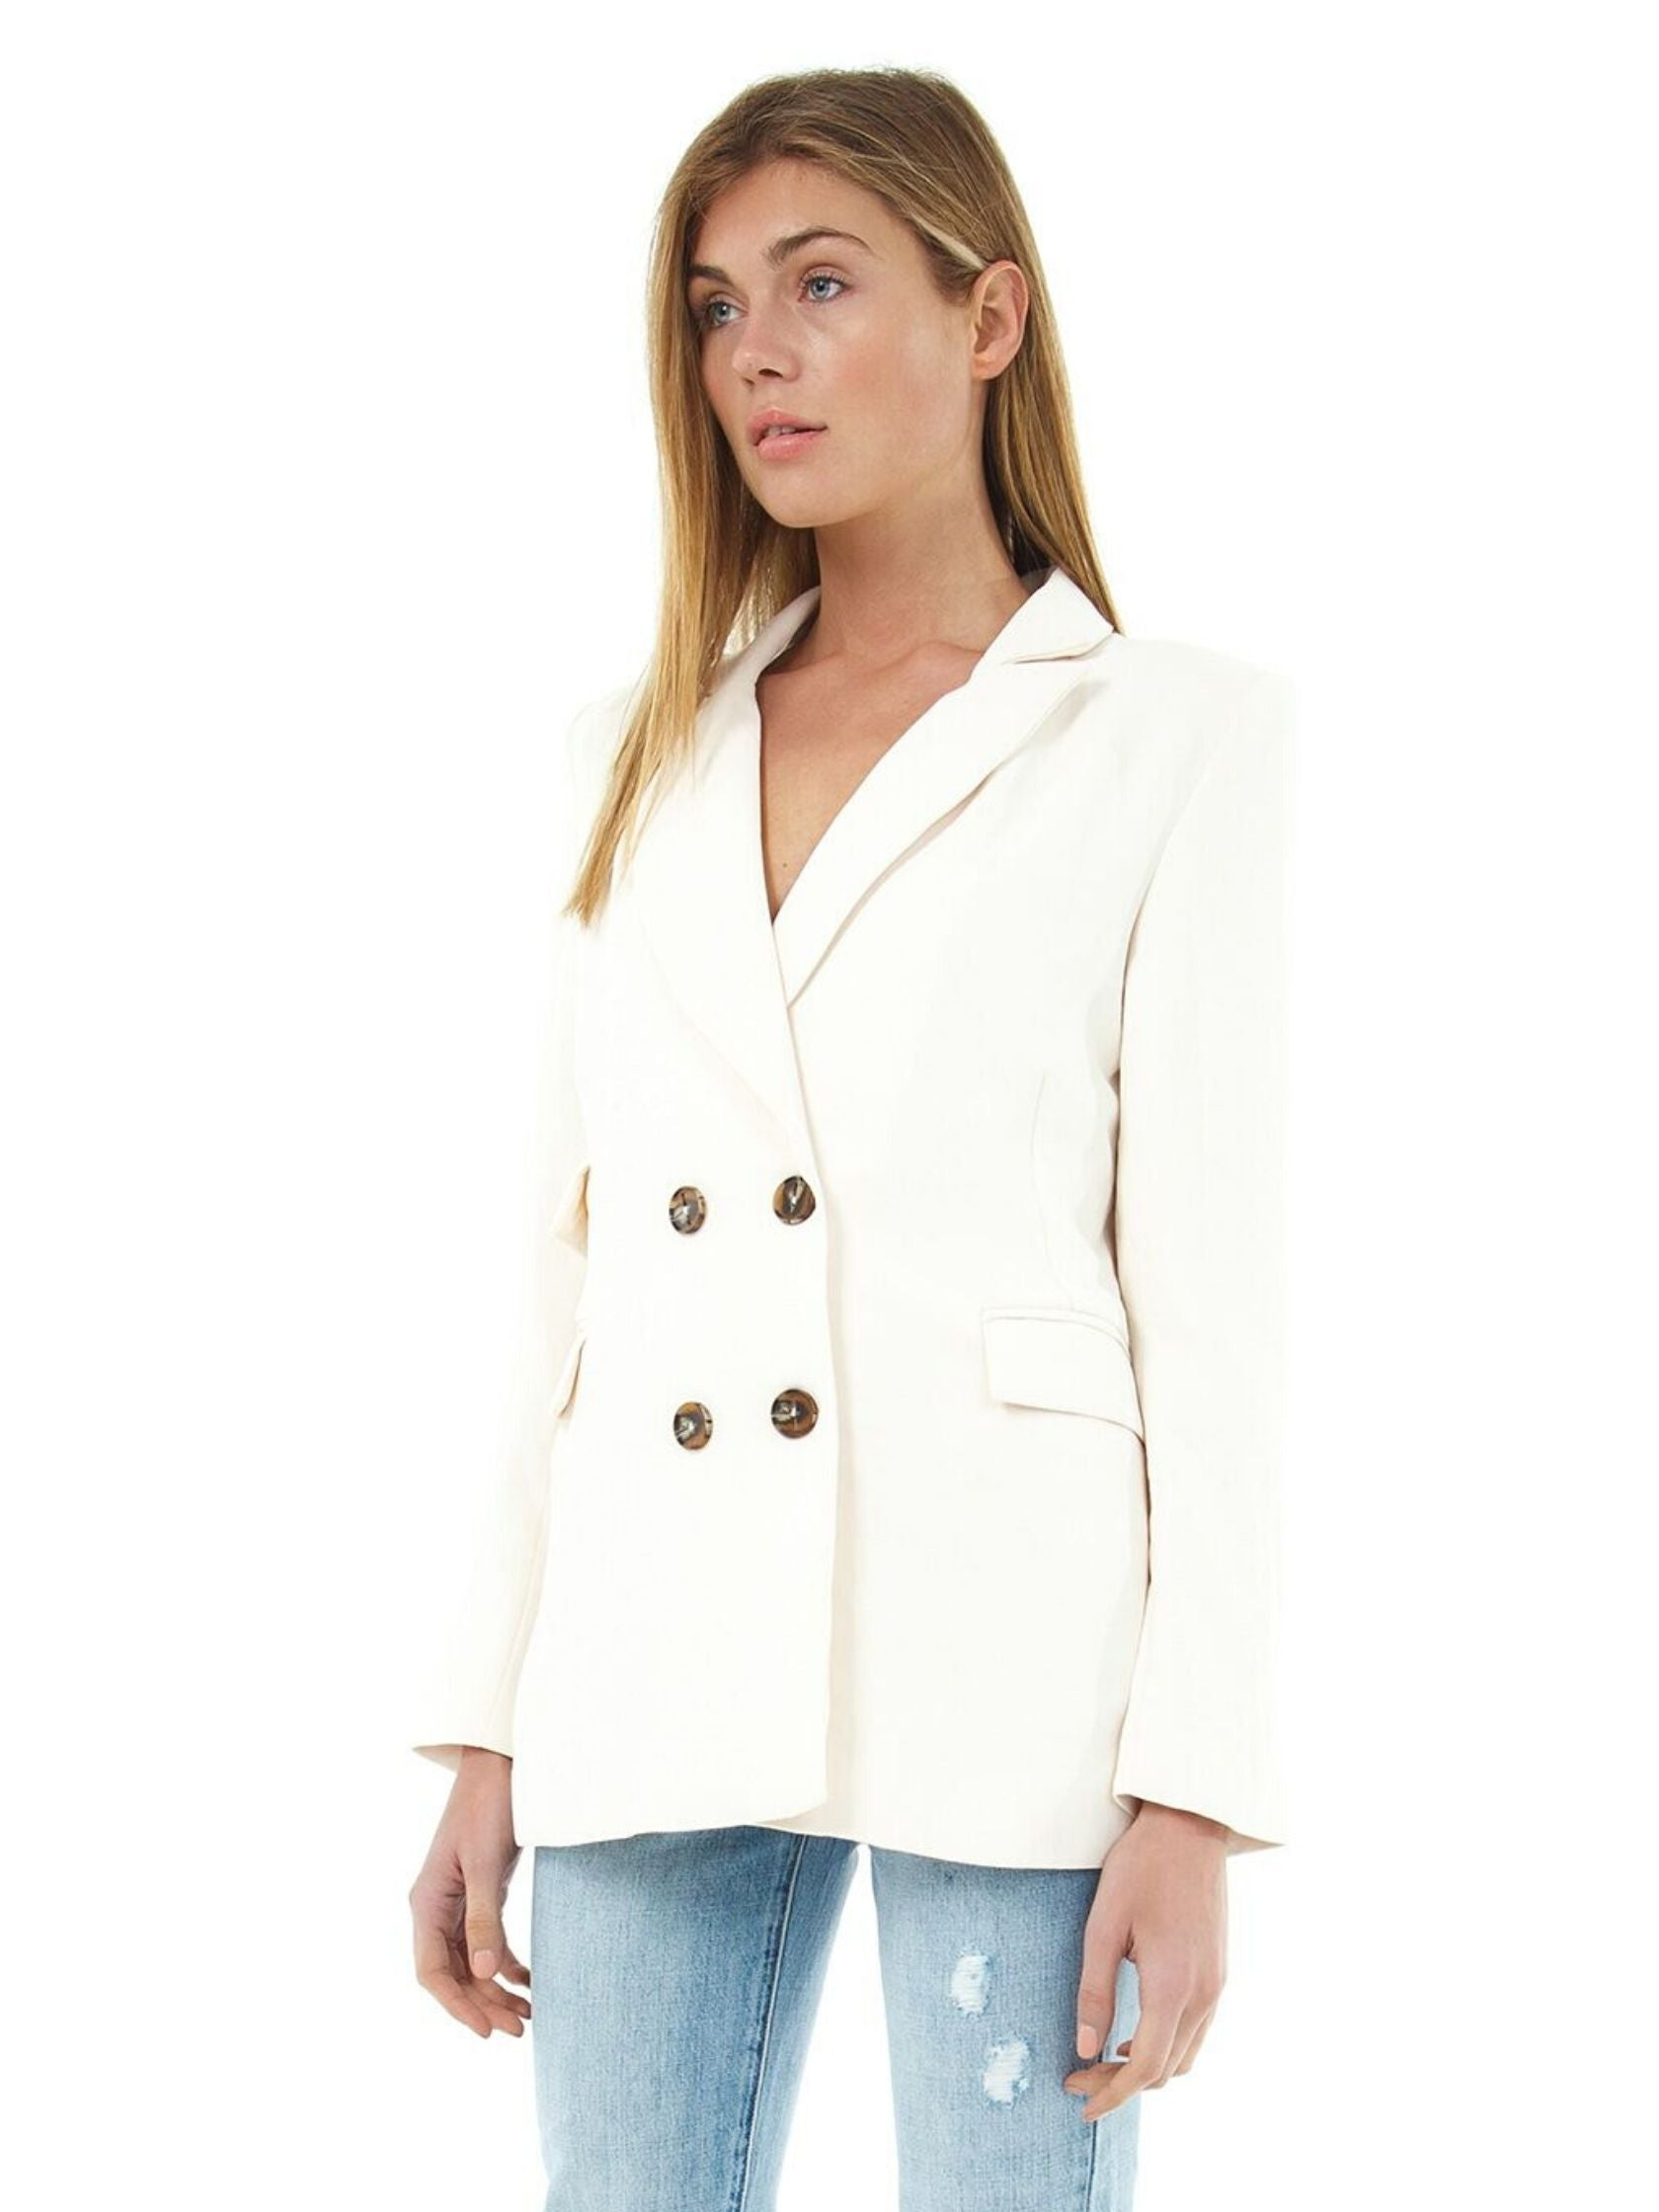 Women wearing a blazer rental from ASTR called Zodiac Blazer